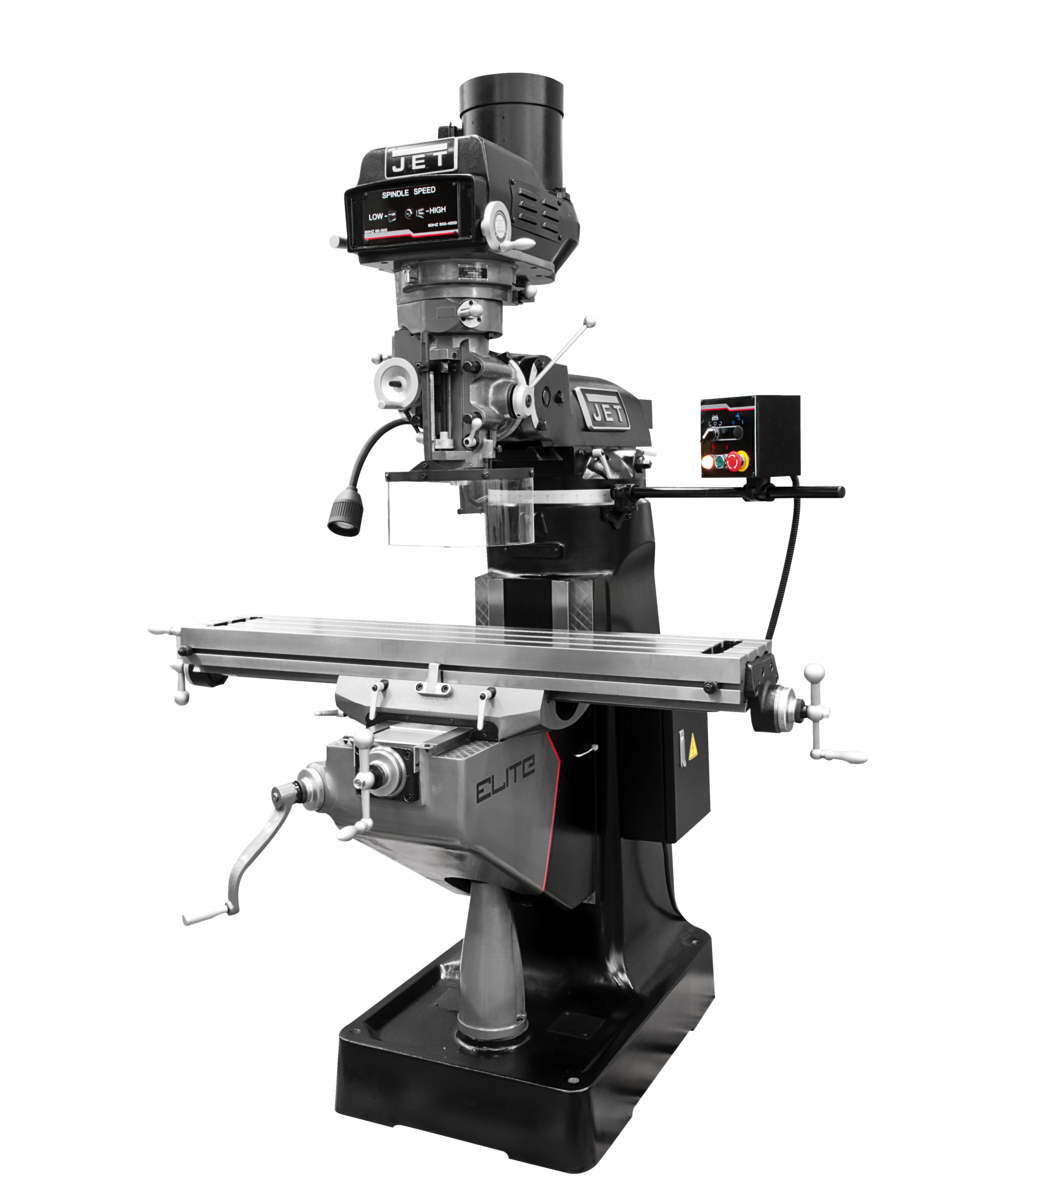 ETM-949 Mill with 2-Axis Newall DP700 DRO